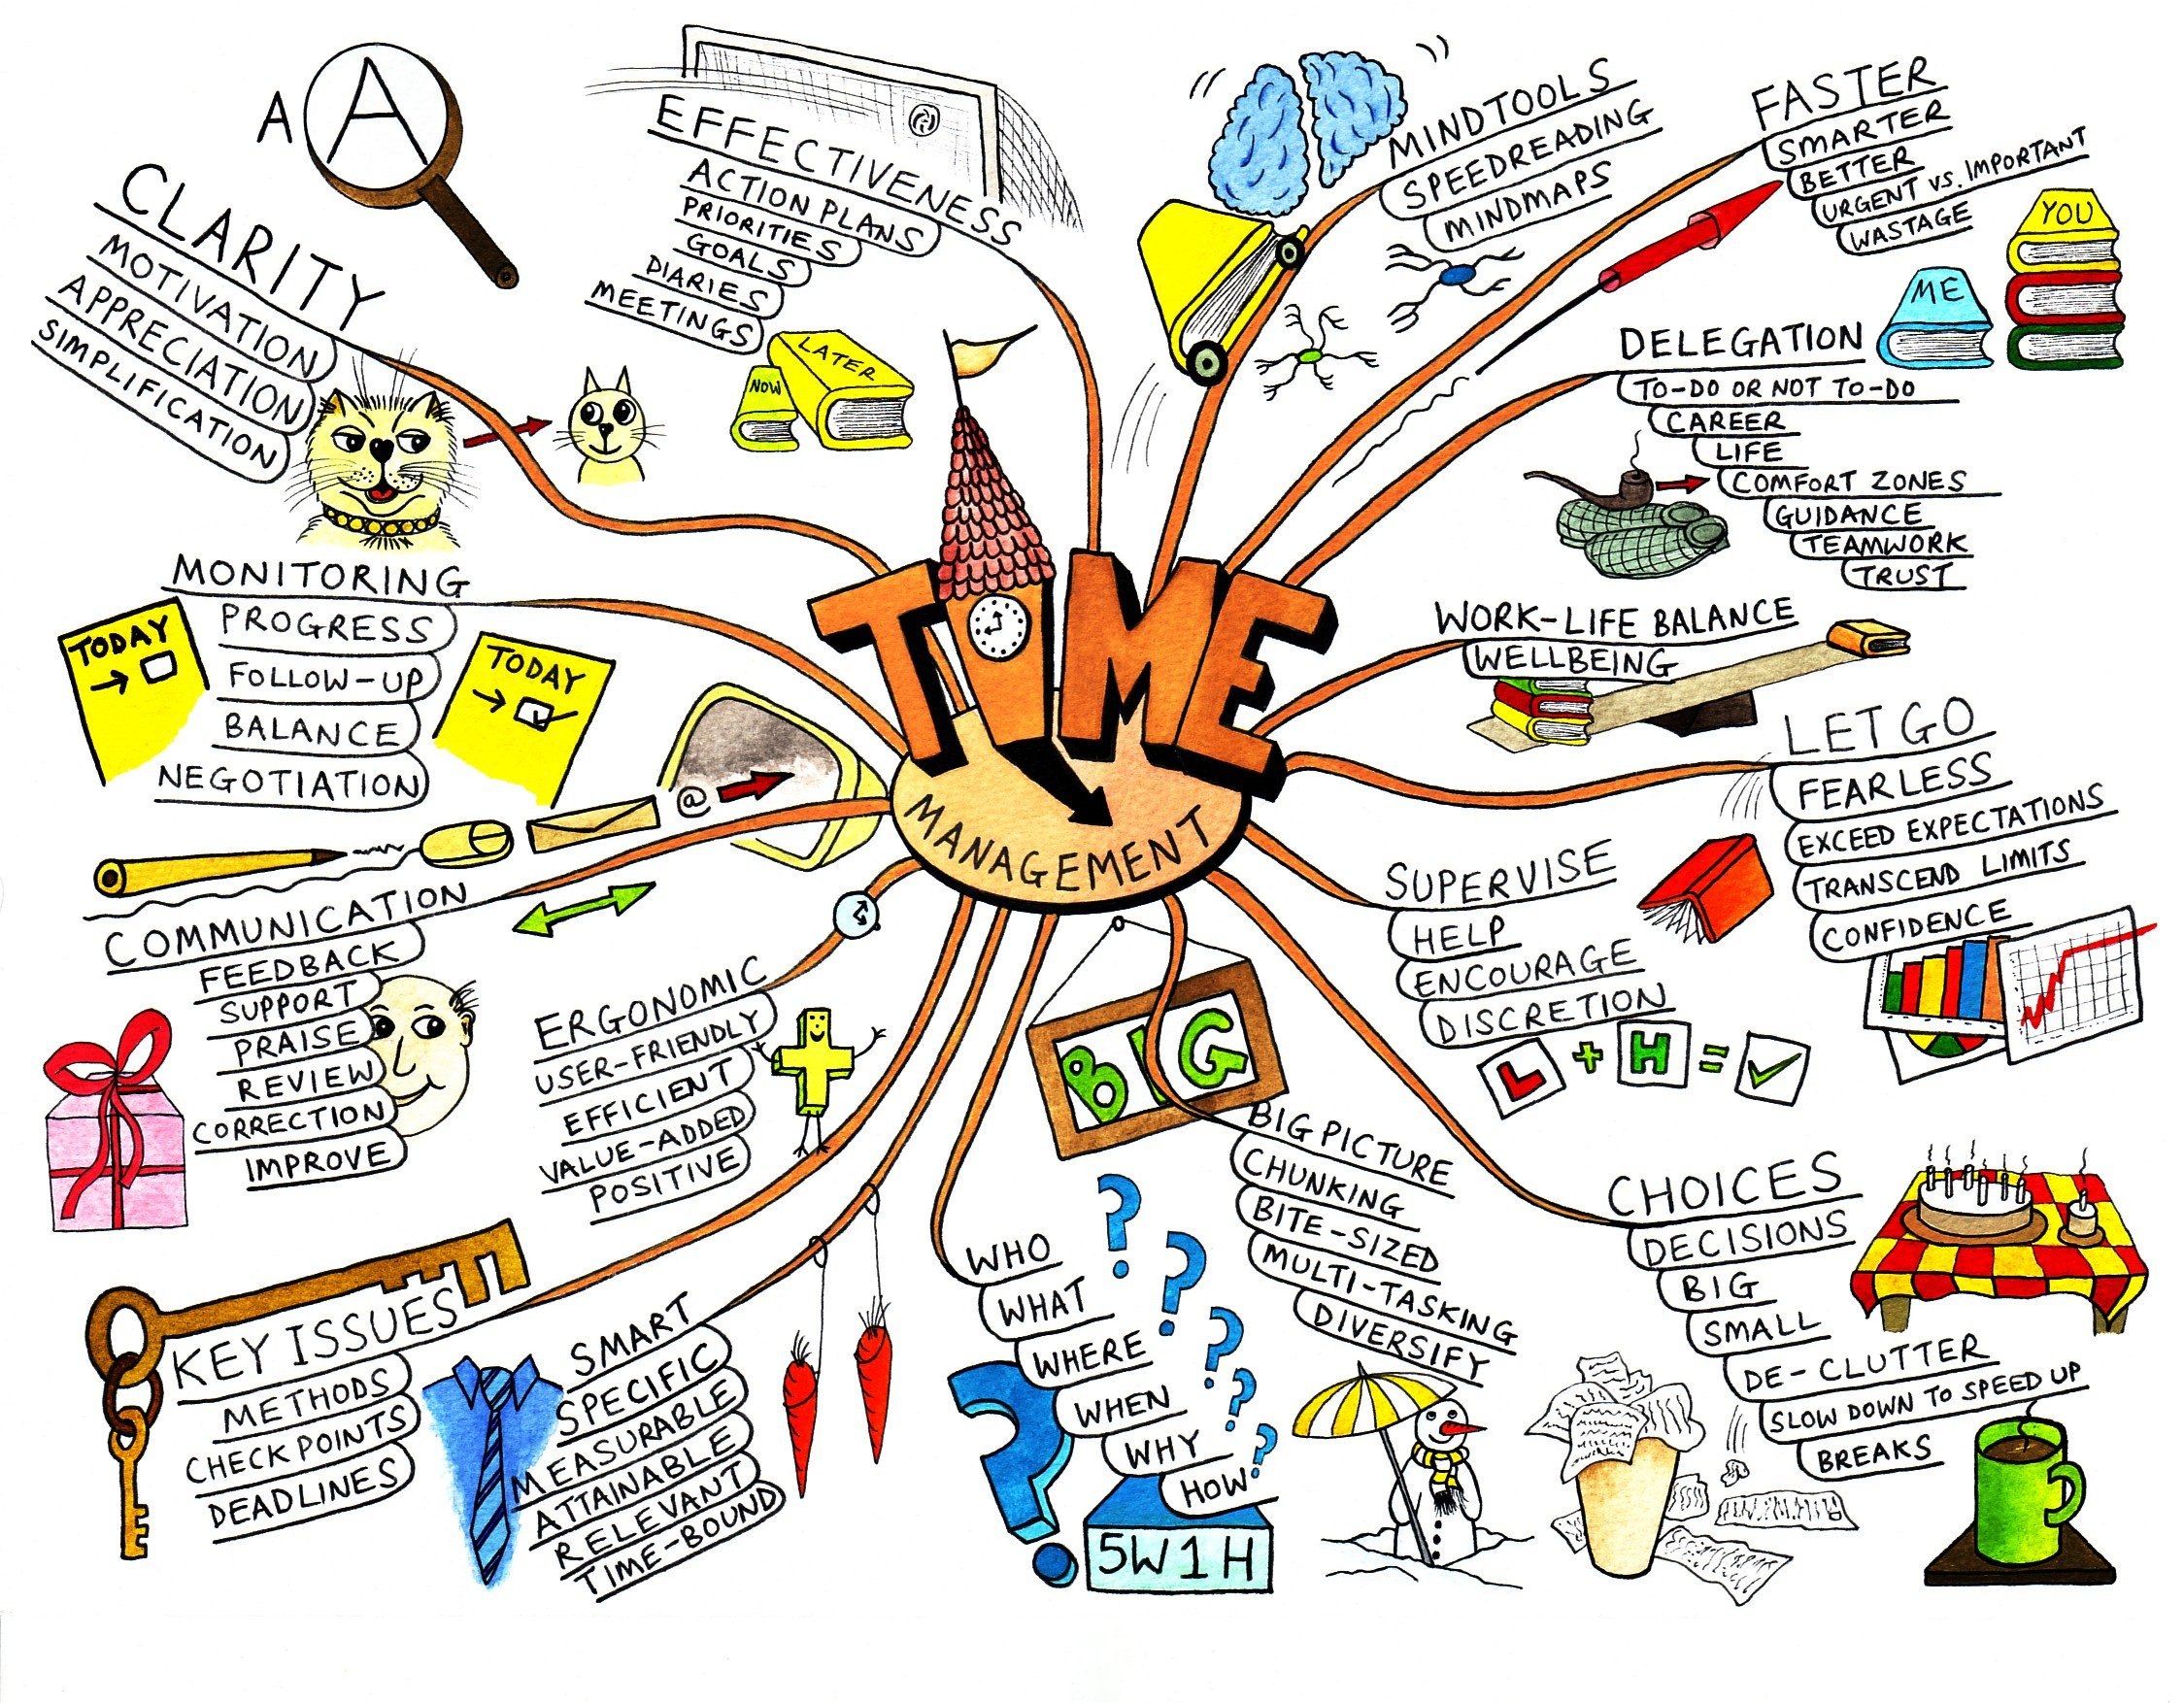 Remarkable Time Management Mind Map 2249 x 1754 · 1037 kB · jpeg